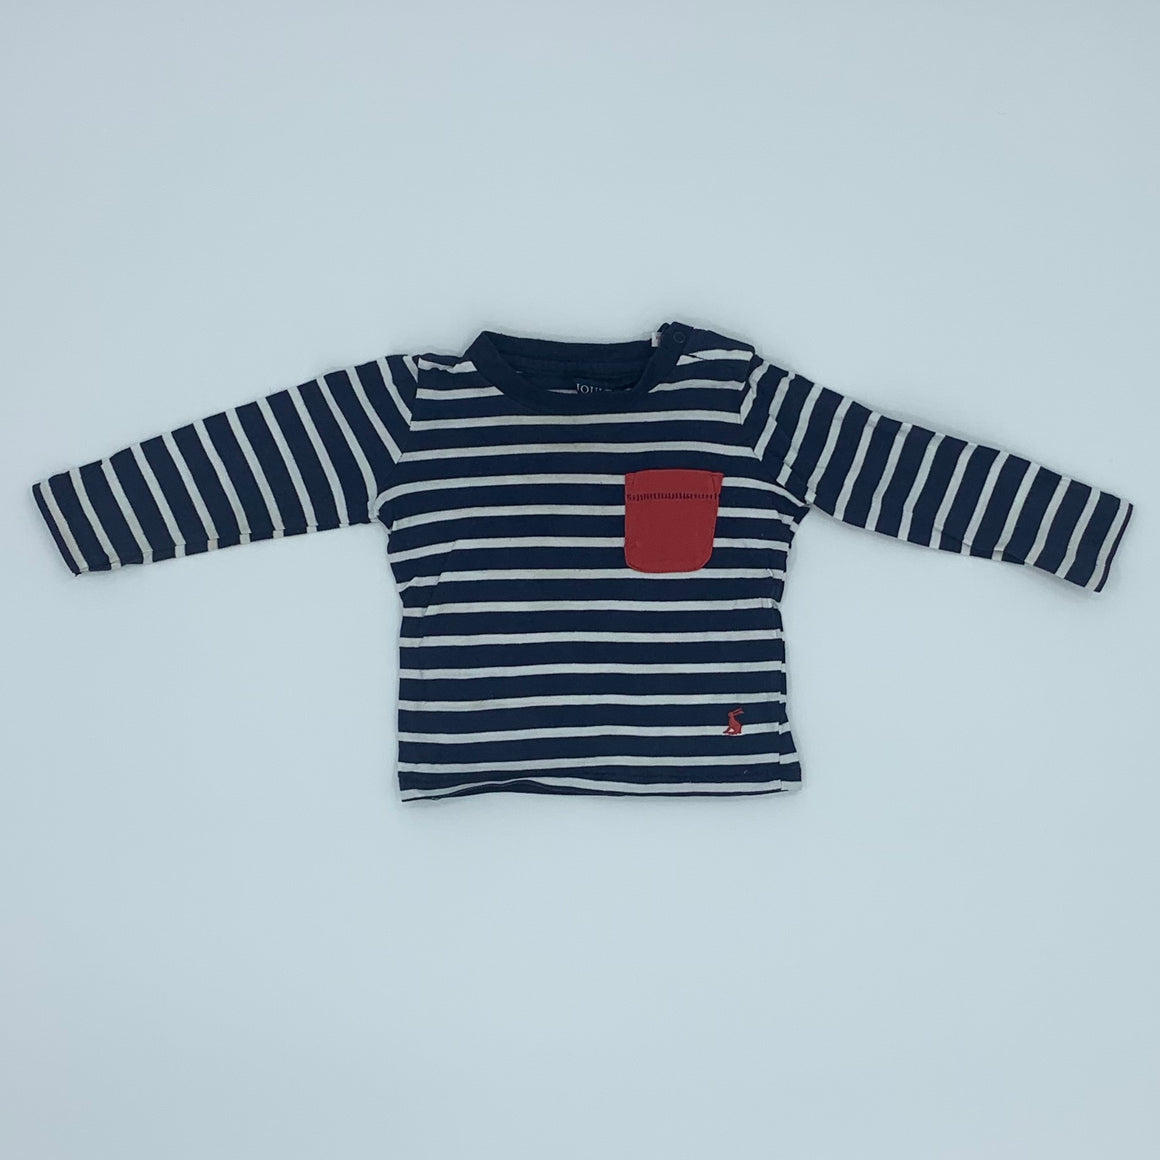 Gently Worn Joules striped red pocket top size 9-12 months